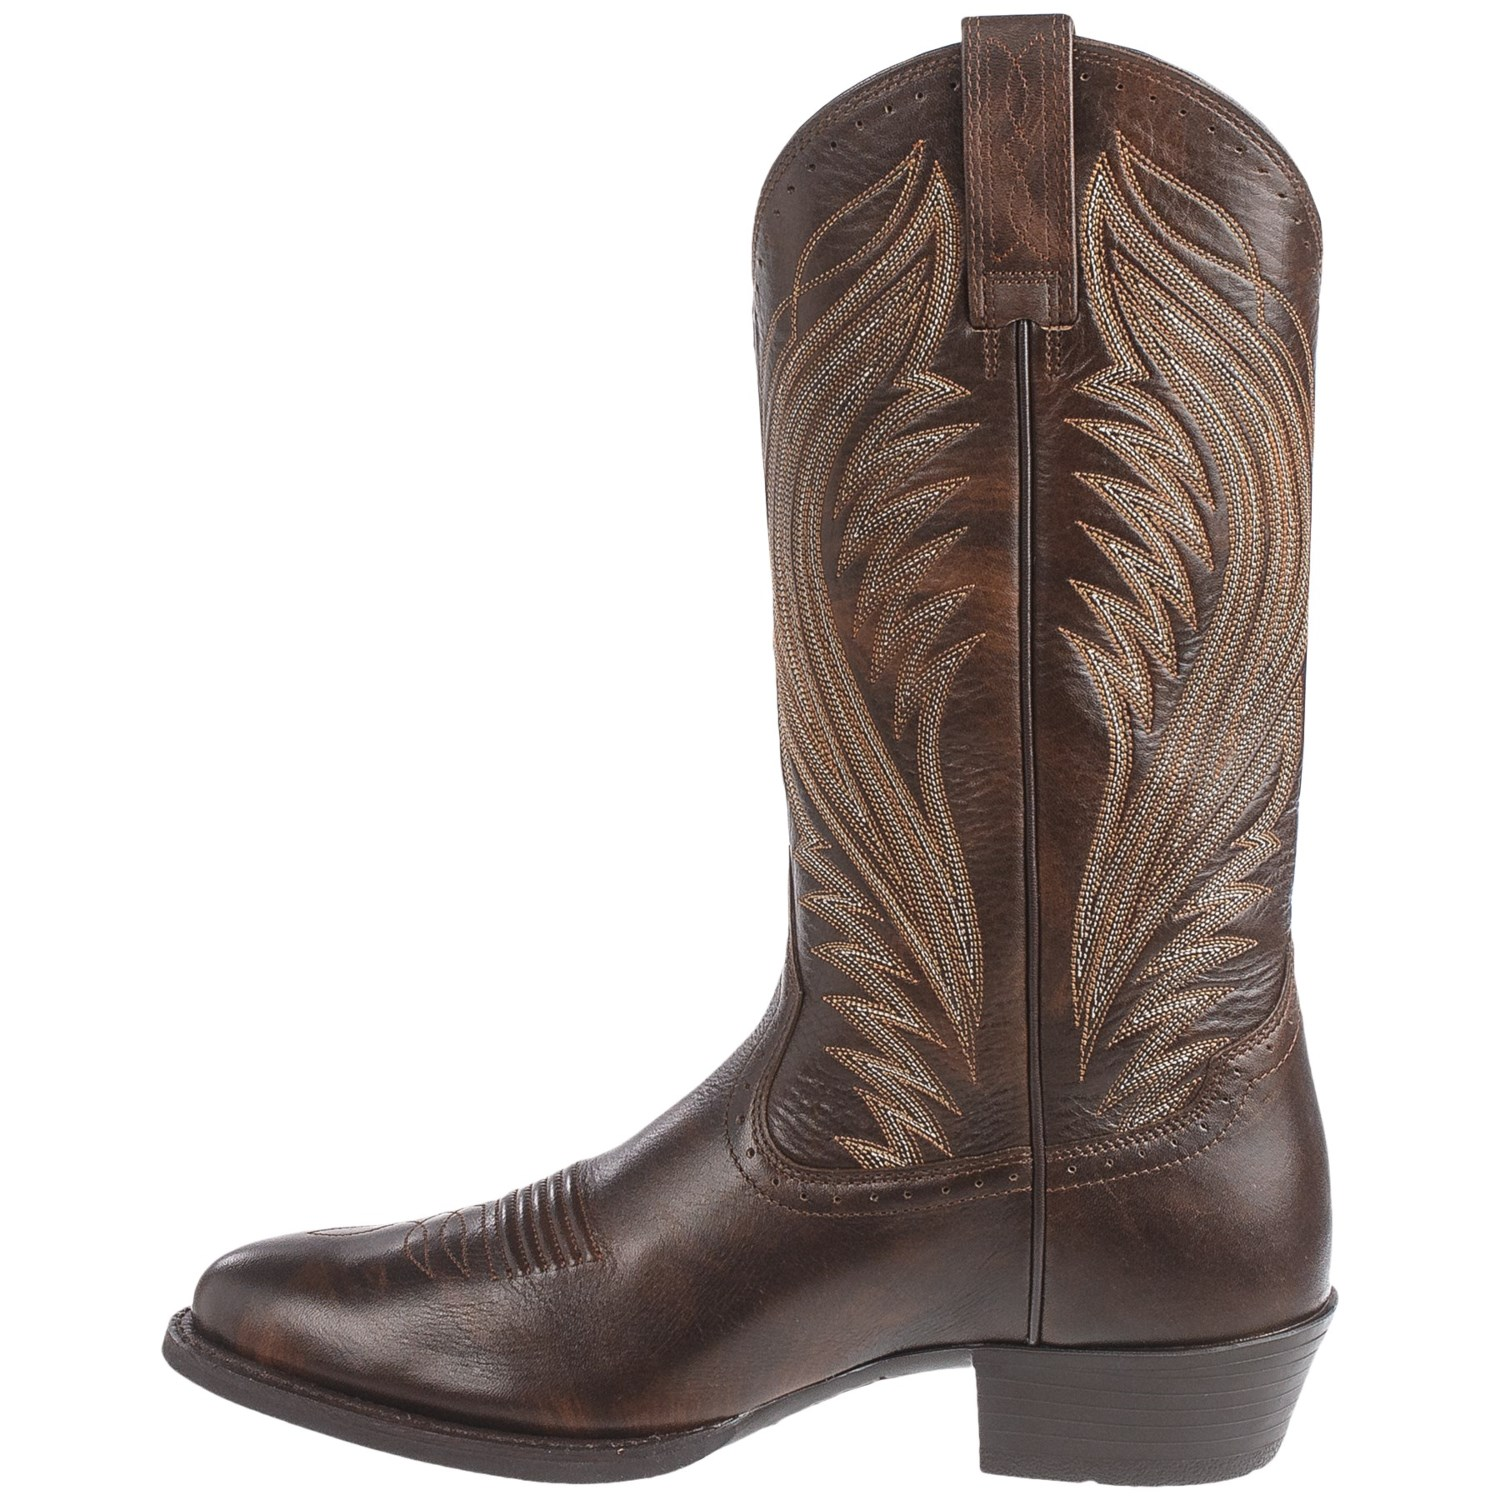 Ariat Boomtown Cowboy Boots (For Men) - Save 61%